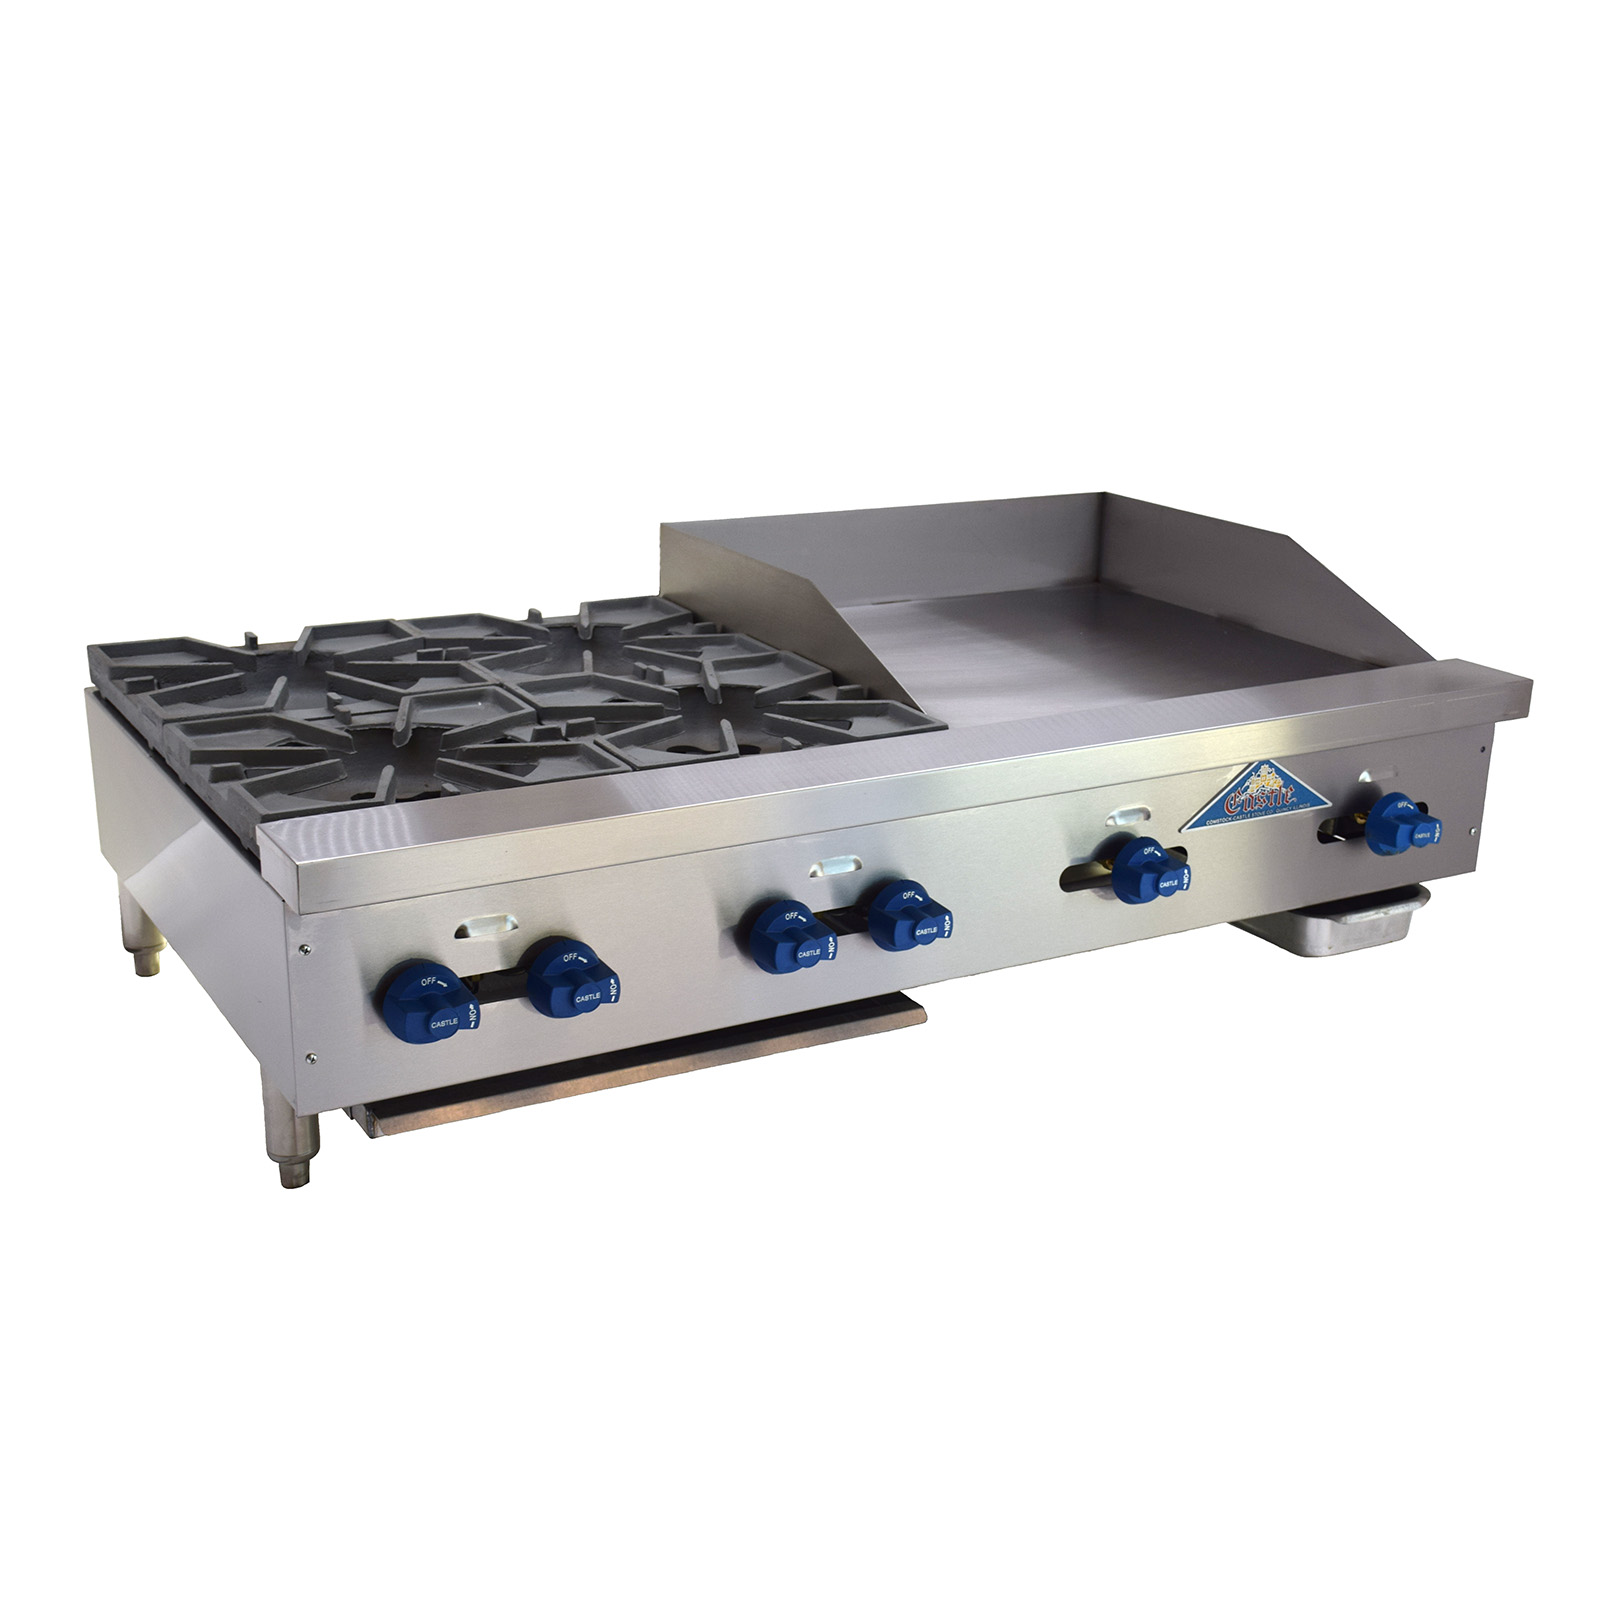 Comstock-Castle FHP48-24T-2LB griddle / charbroiler, gas, countertop